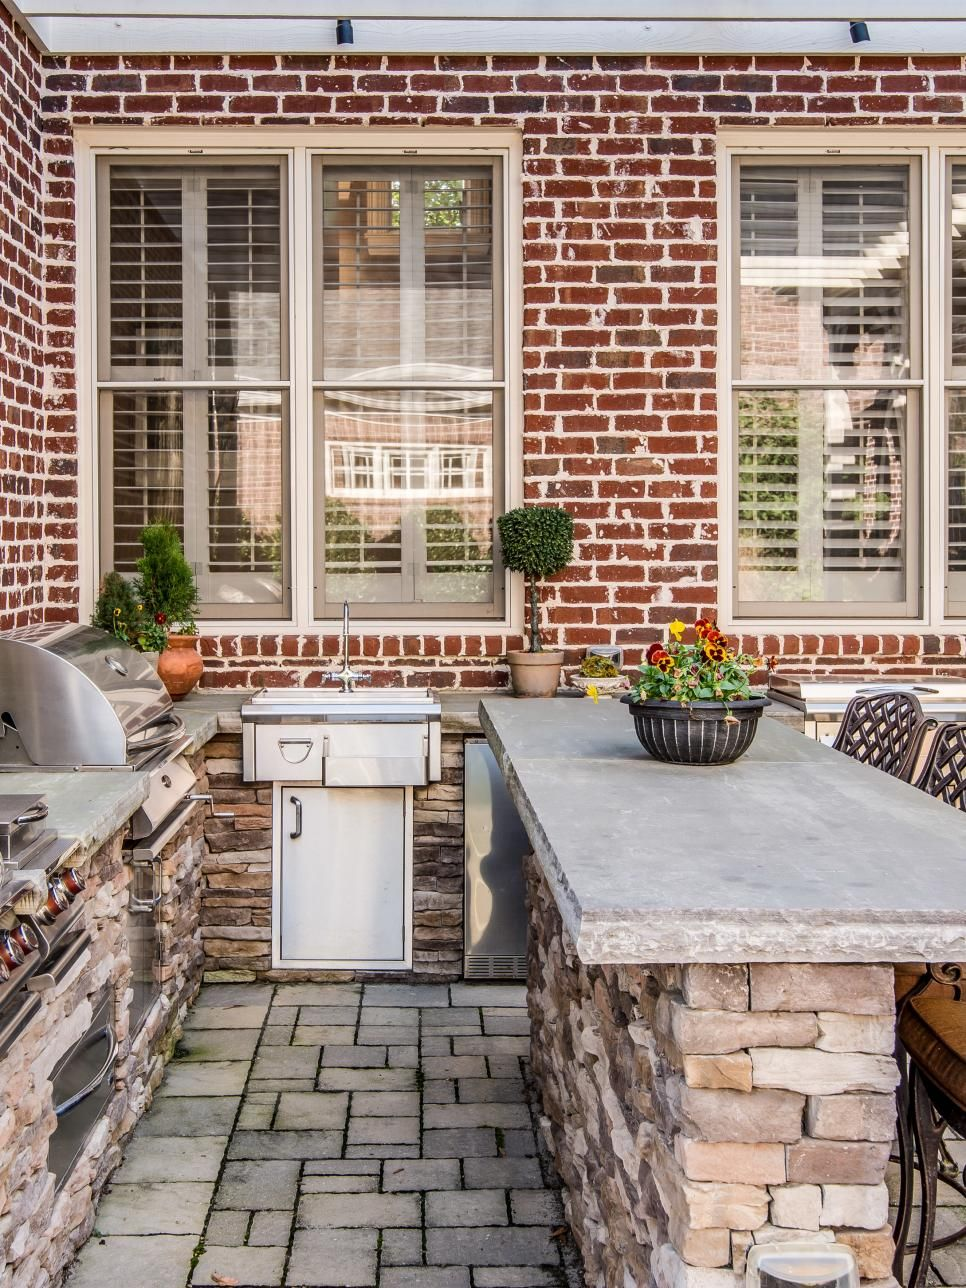 A Stone Bar With Stools Adjacent To The Outdoor Cooking Area Captivating Outdoor Kitchen Bar Designs Design Inspiration